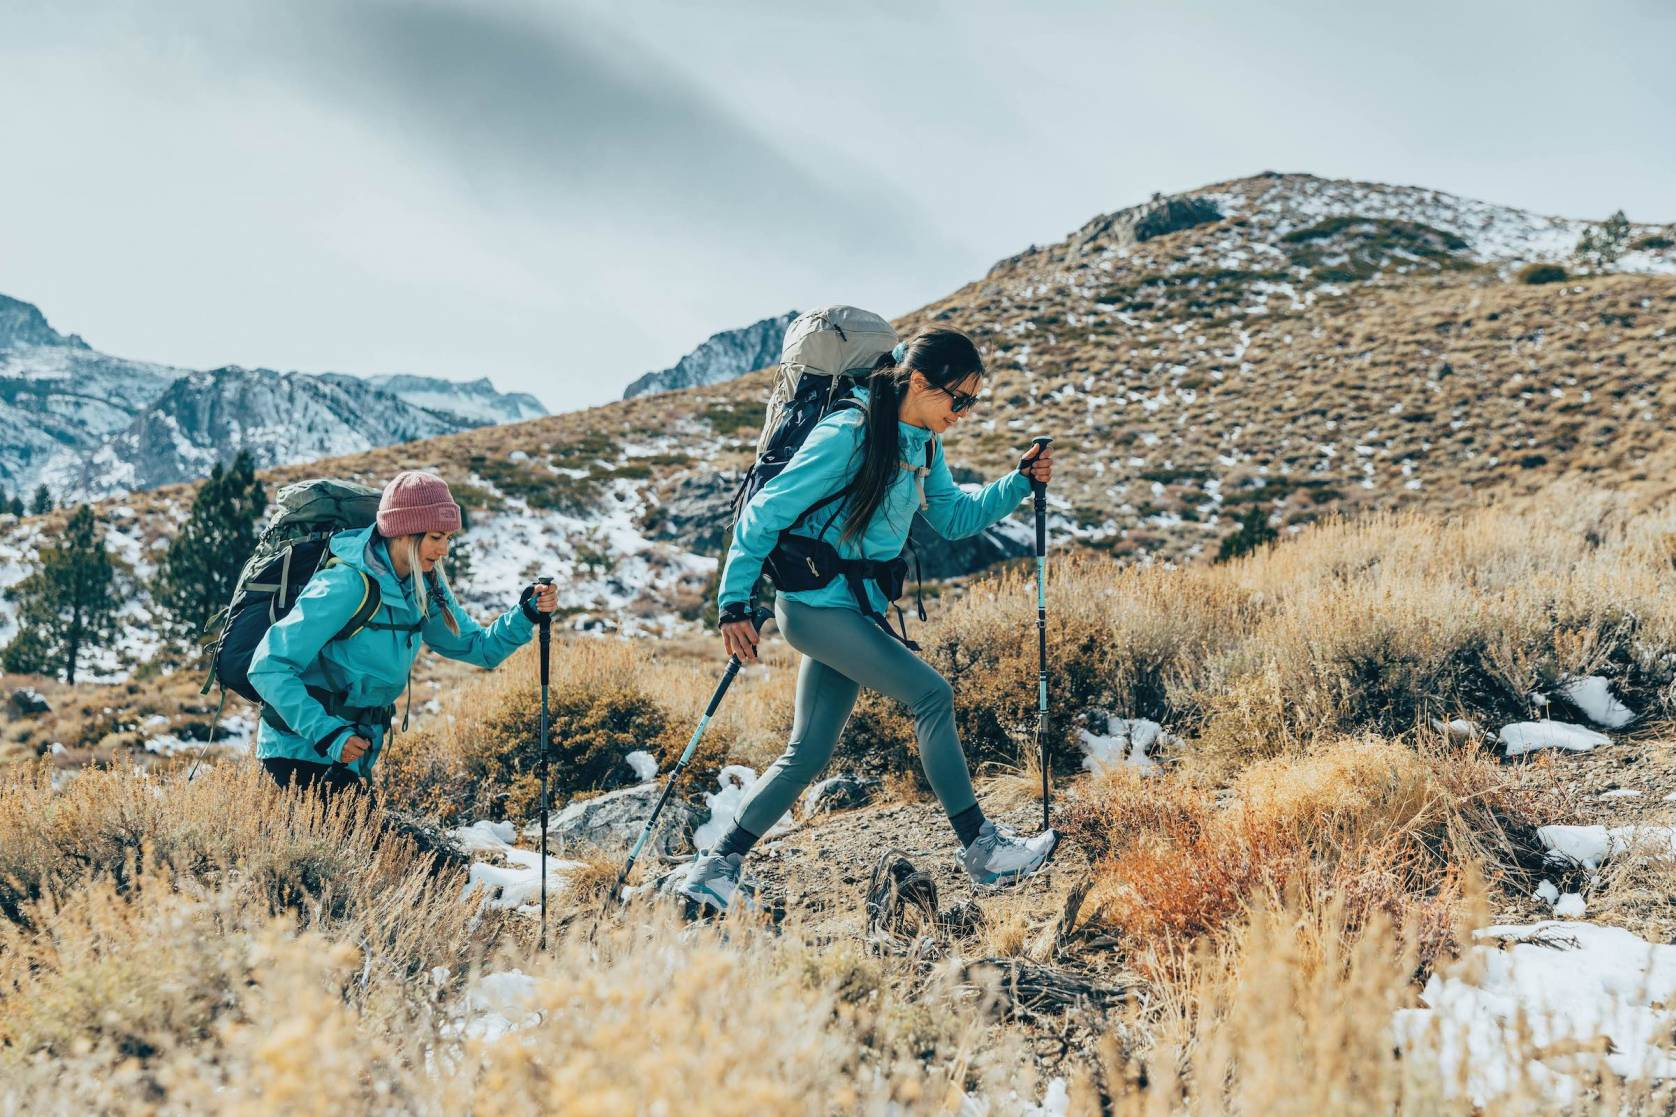 Two female hikers in matching jackets hiking uphill in winter